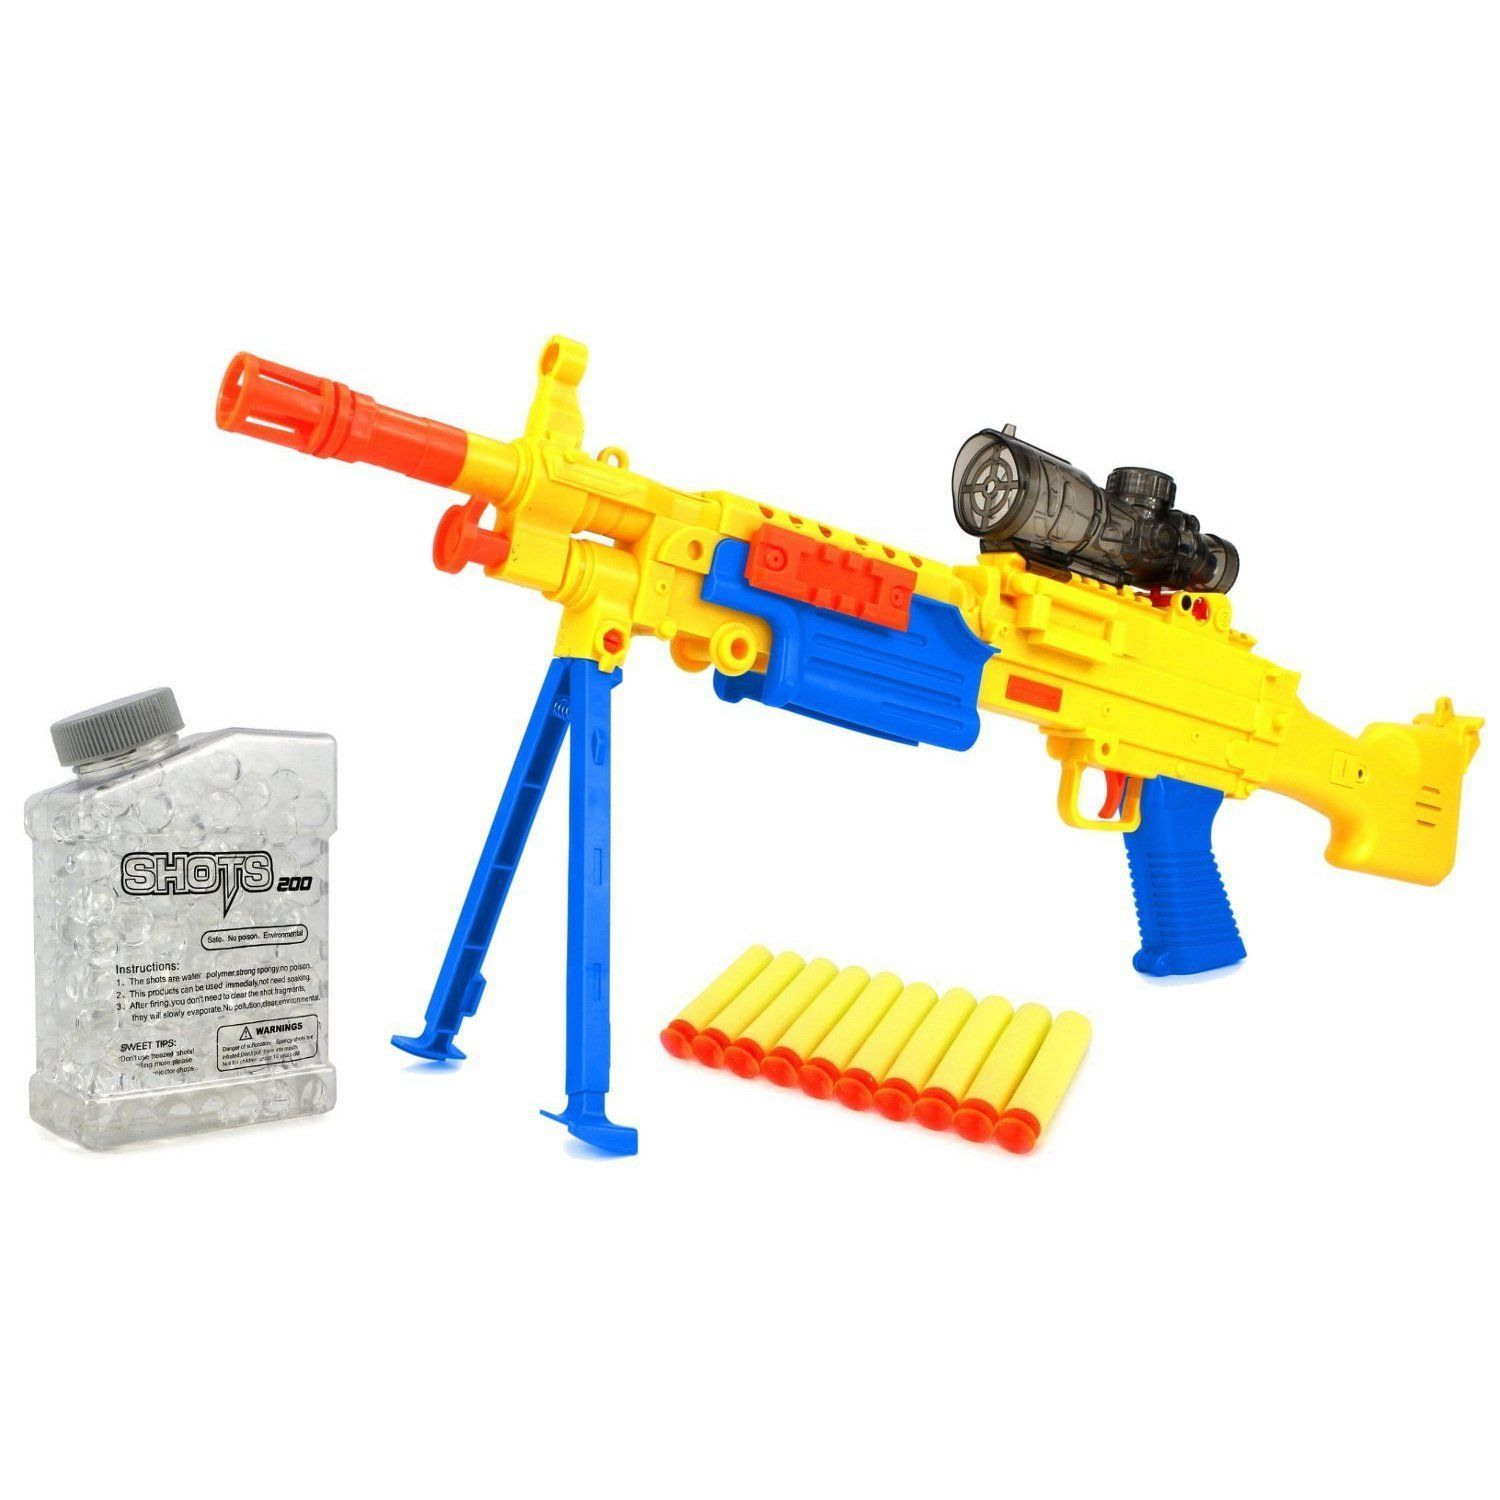 Velocity Toys YK Super Machine Gun Spring Powered Toy Foam Dart